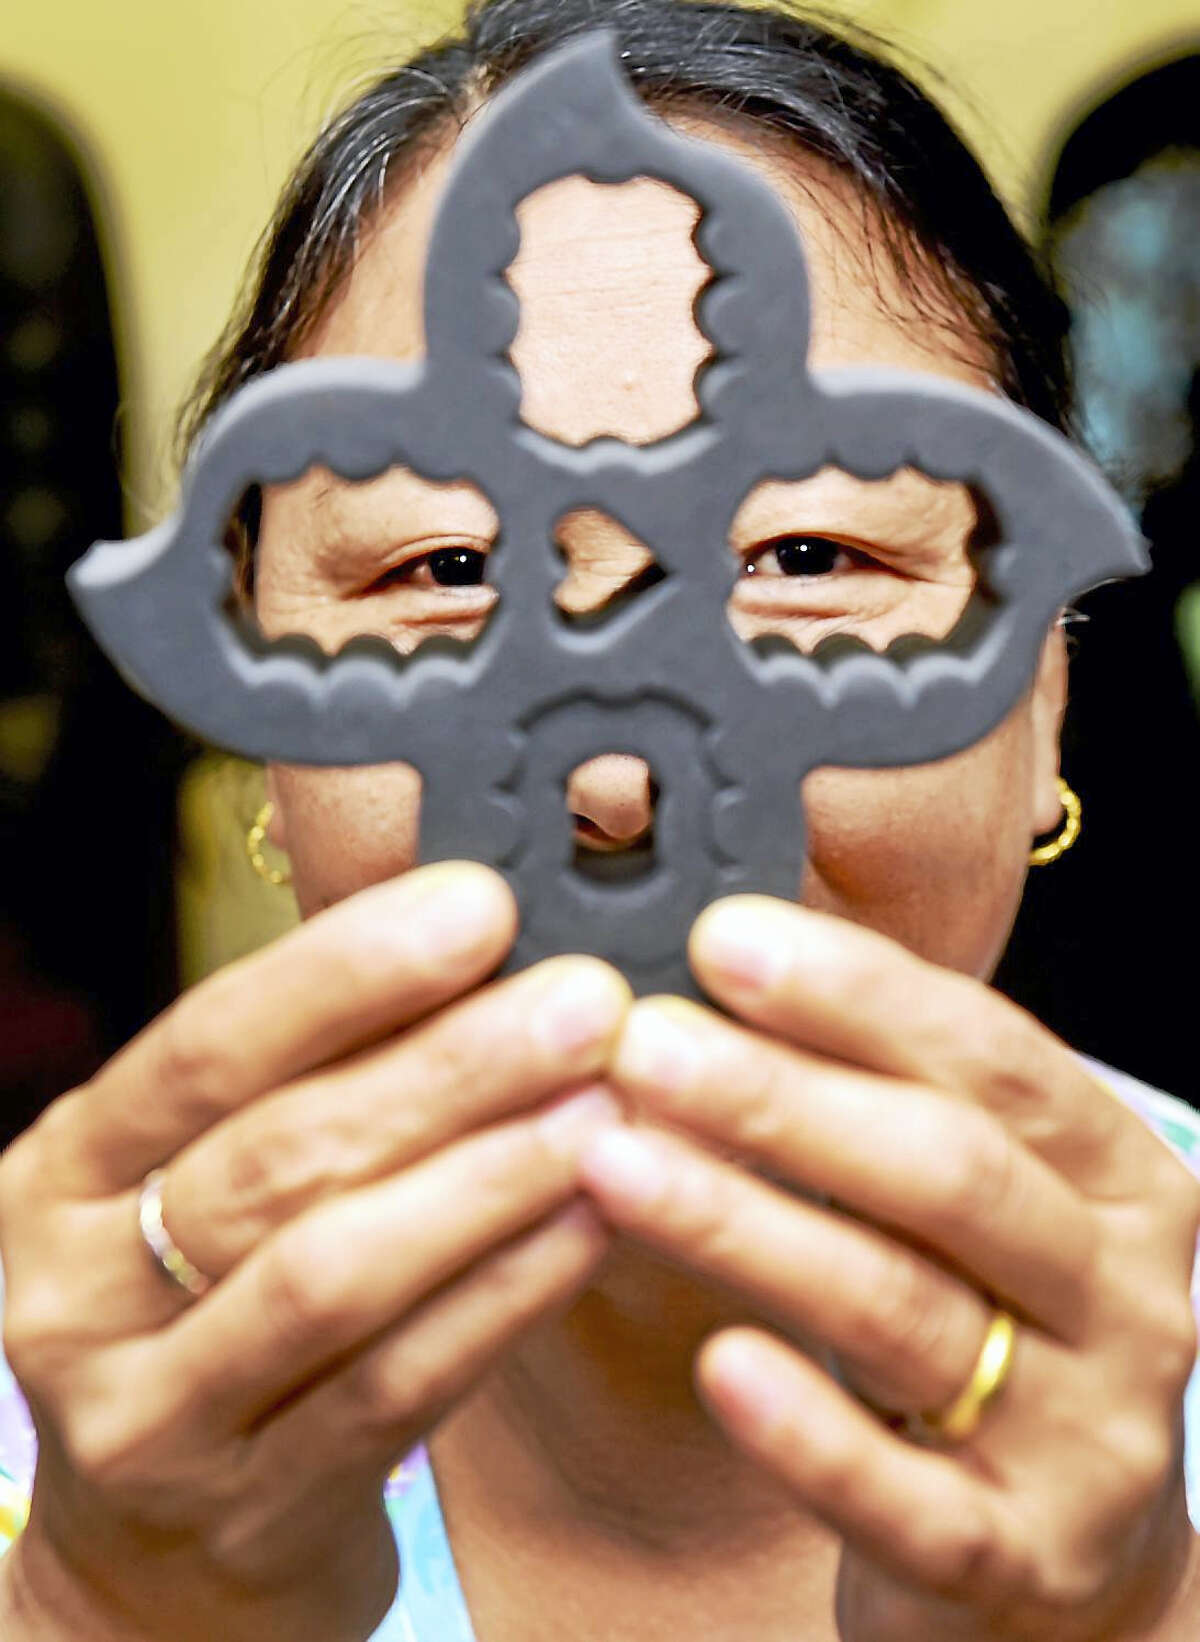 (Peter Hvizdak - New Haven Register) Kunga Choekyi, owner of K.C.'s Nails L.L.C. of Old Saybrook, a manicure and pedicure nail salon, with her patented invention, a nail polish holder called the Polish Posy, in the design of a lotus flower. The Polish Posy enables anyone to safely hold, tilt, and transport the bottles. Cyoekyi is a Tibetan and a follower of the Dalai Lama. A portion of the proceeds of the Polish Posy will go to organizations that care for Tibetan refugee children in southern India and to local charities.